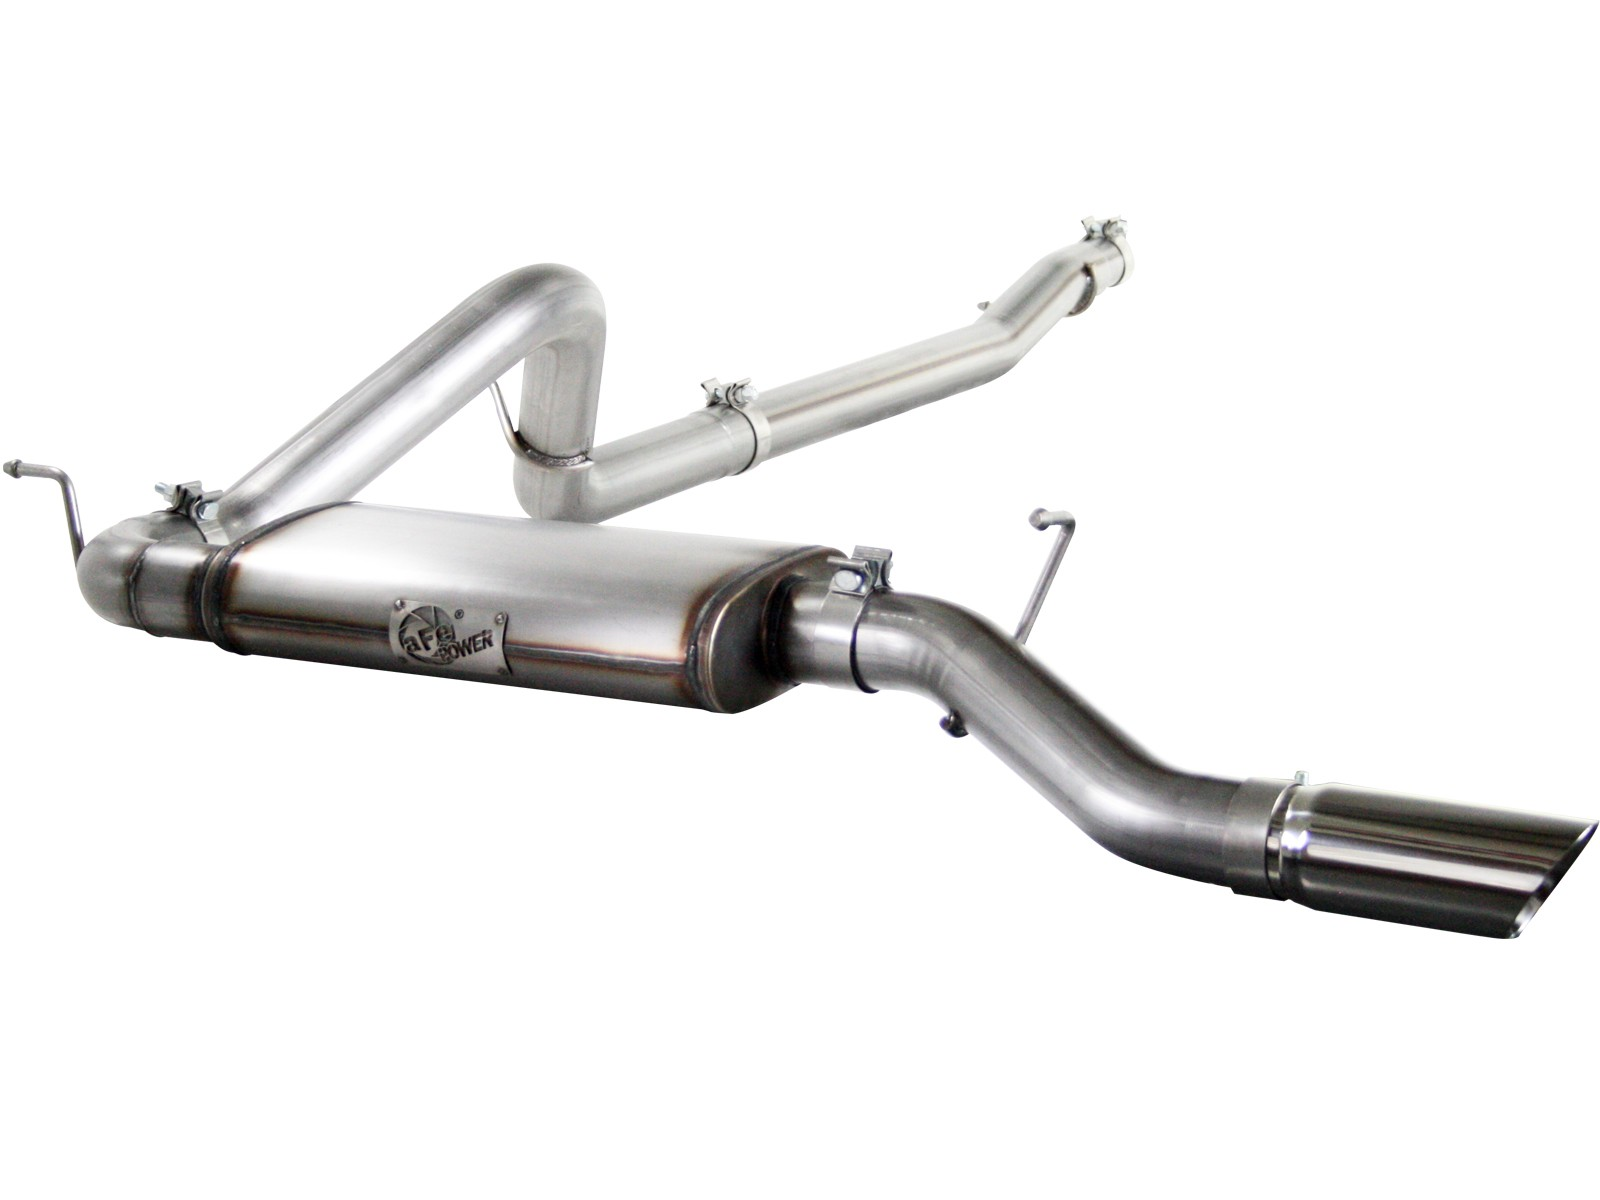 "aFe POWER 49-46211 MACH Force-Xp 3"" 409 Stainless Steel Cat-Back Exhaust System"